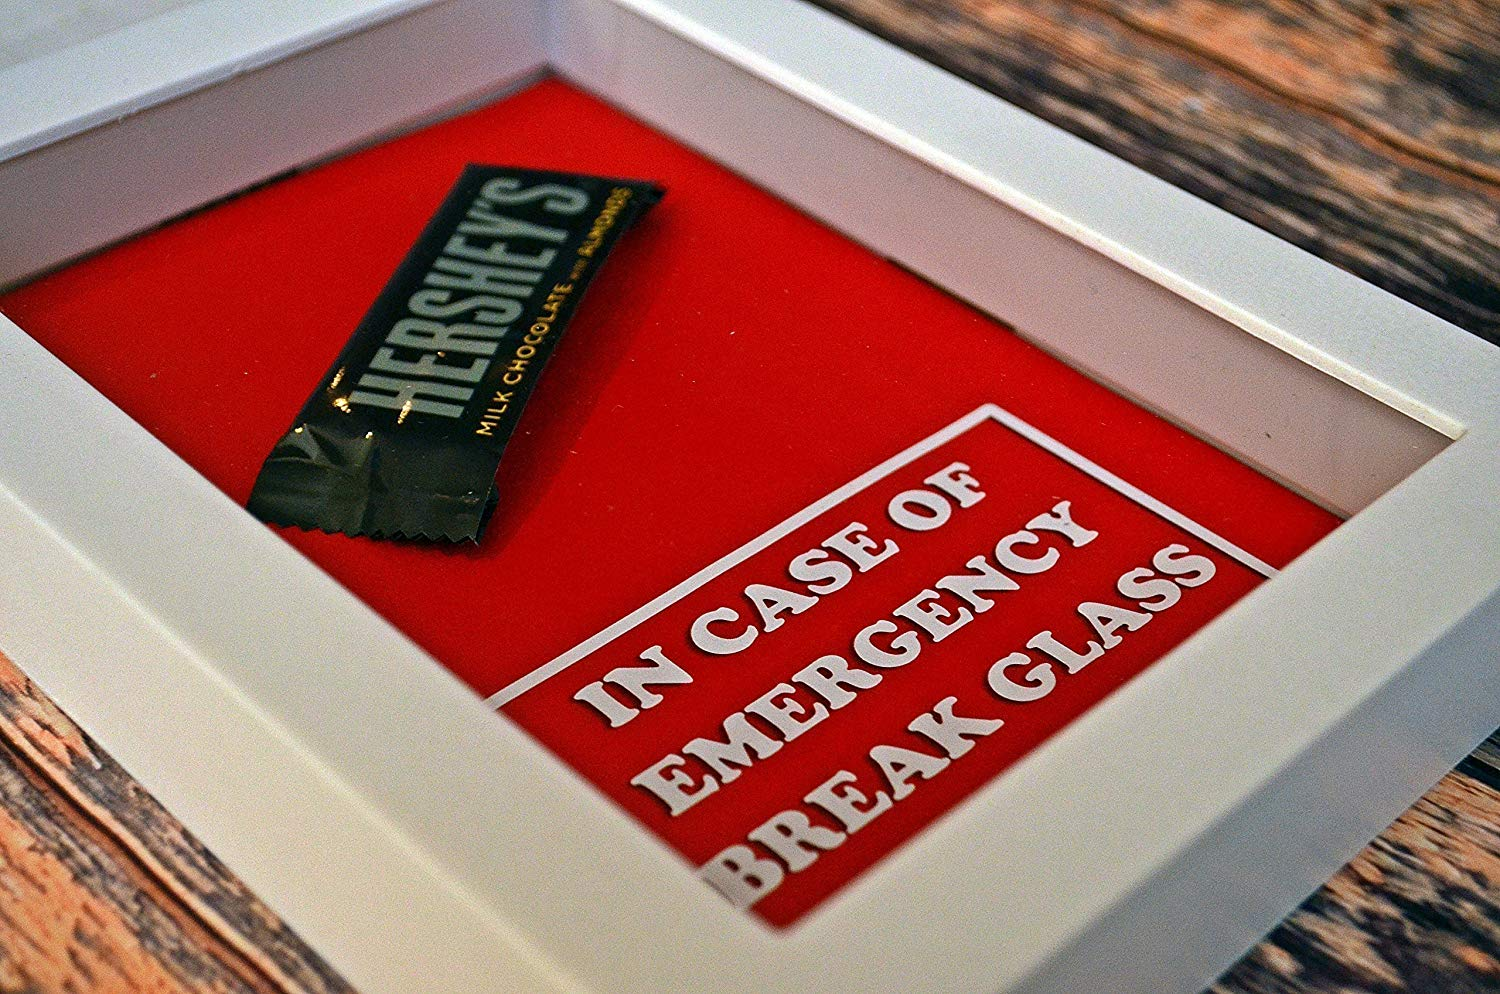 Valentine's Day Gift | Gift for Valentines | Chocolate Bar - In Case of Emergency Break Glass | Gift for Chocolate Lover | Gag Gifts for Boyfriend, Girlfriend | Gift for BFF | Gift for Mom | BFF Gift